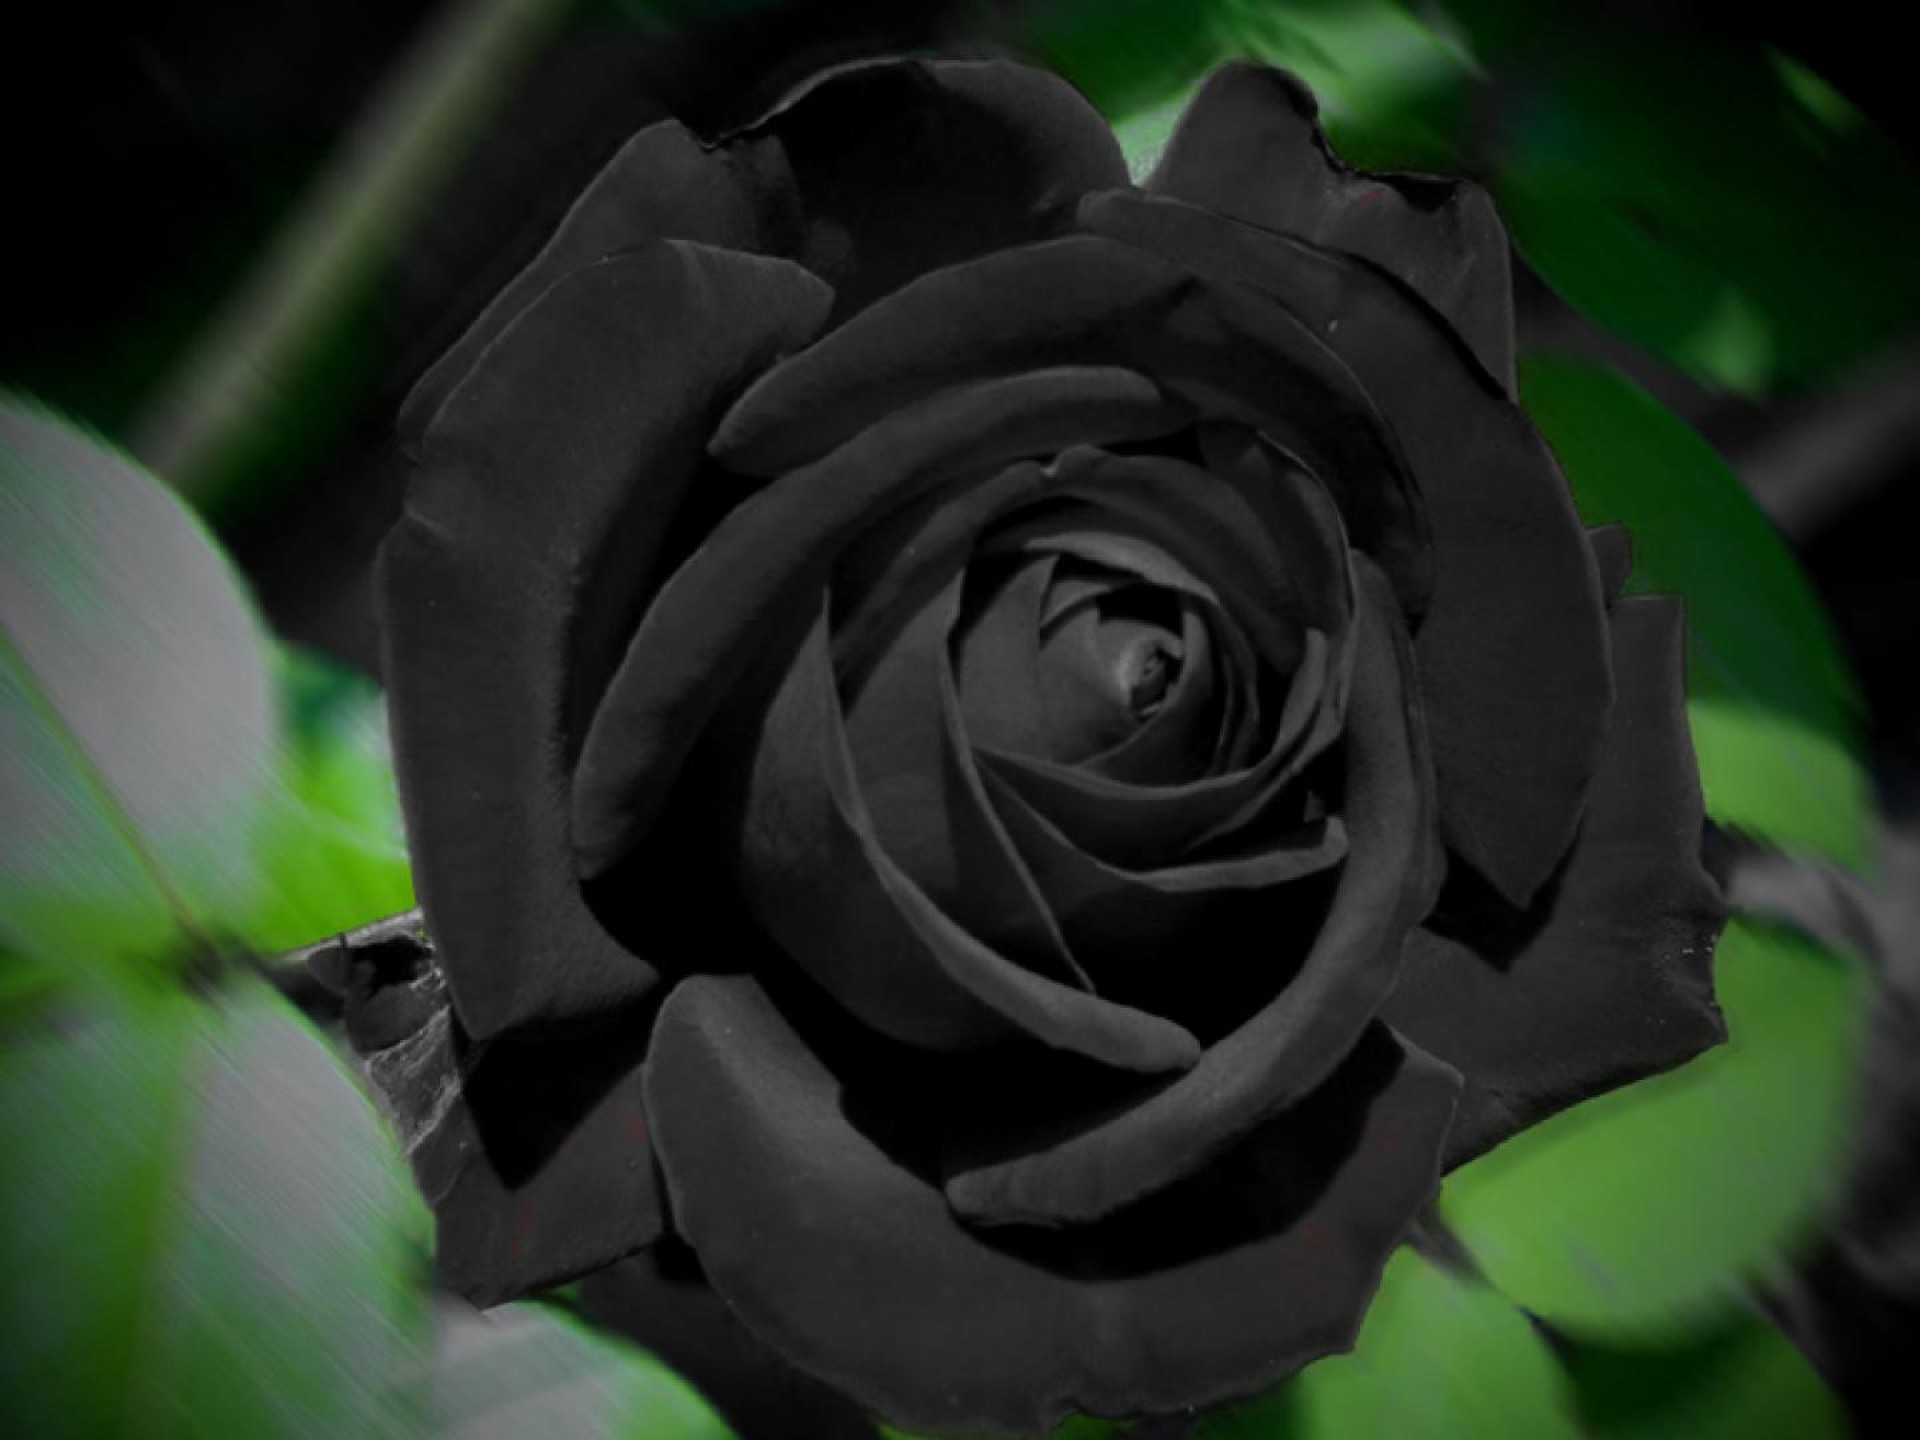 Black Rose - Wallpaper, High Definition, High Quality, Widescreen